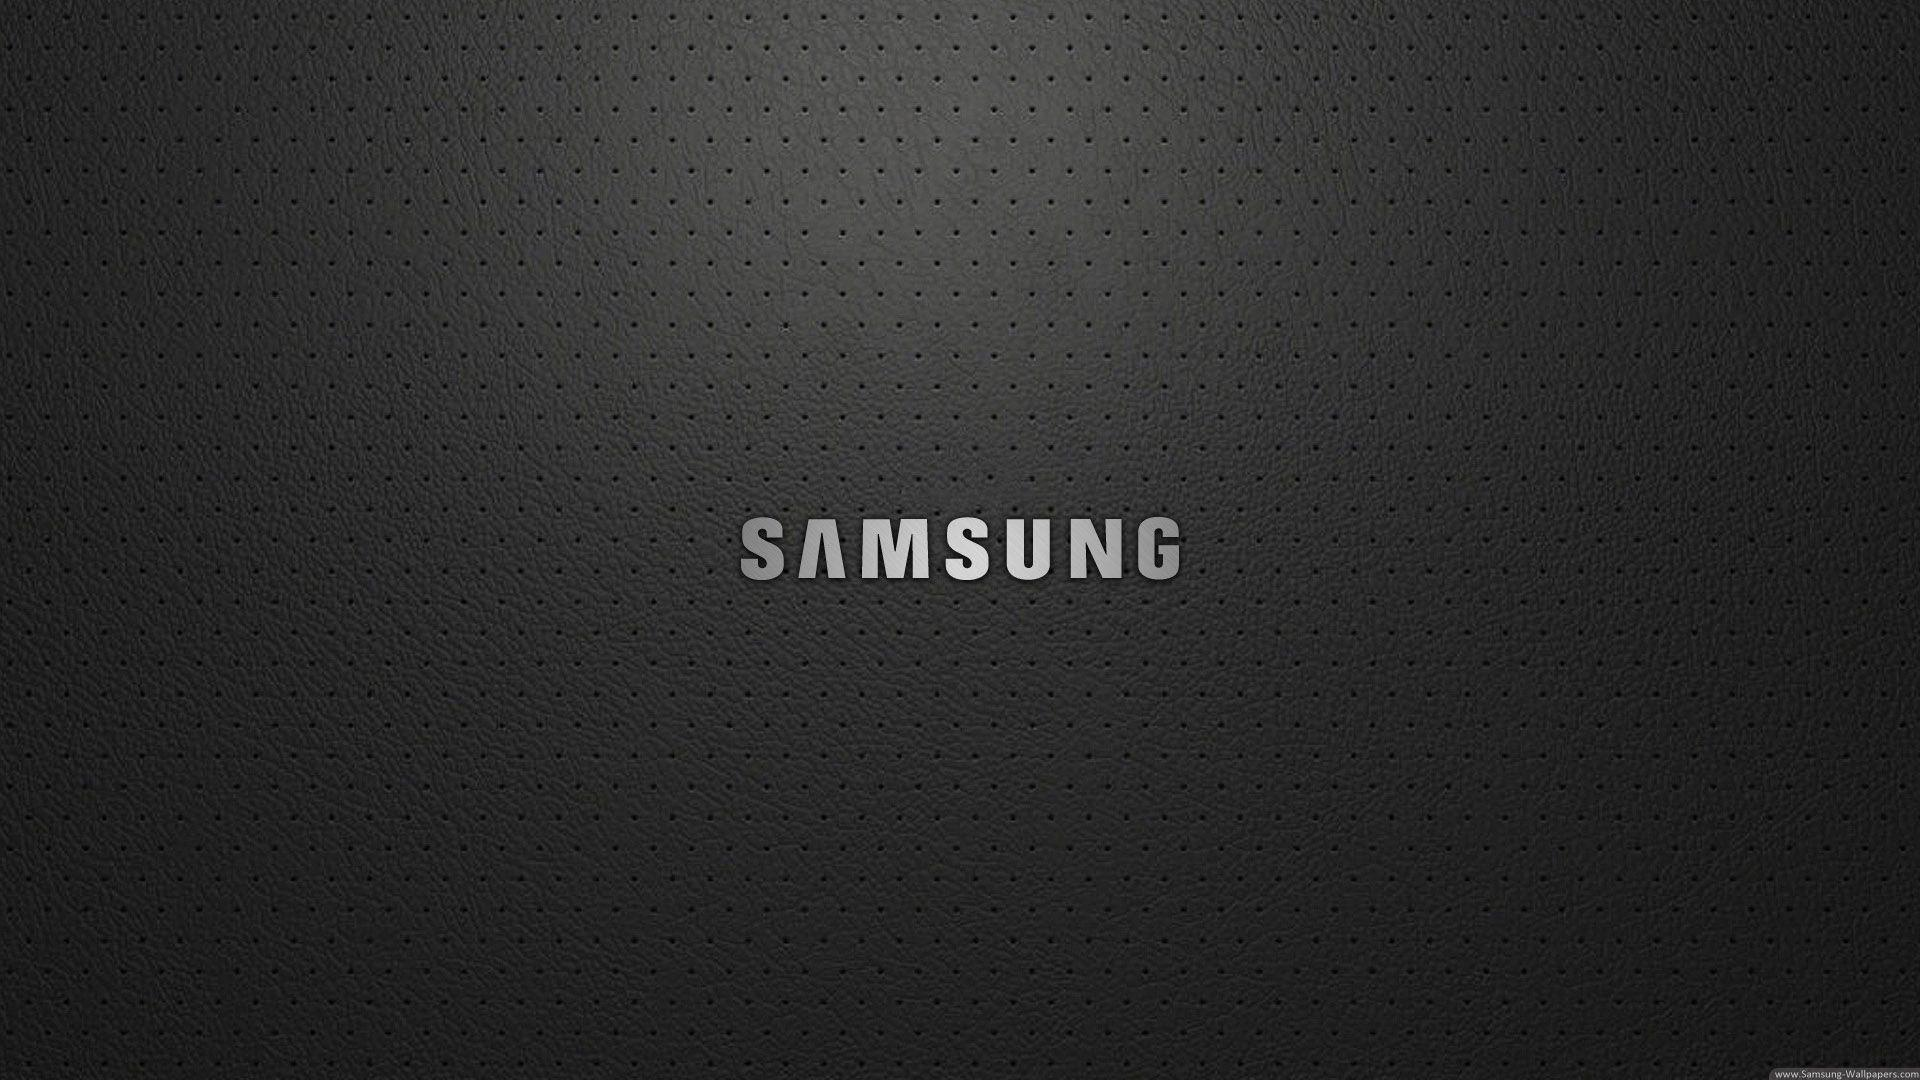 Samsung Logo Wallpapers   Wallpaper Cave Wallpapers Logo Samsung HD      Logo Backgrounds   Best Desktop